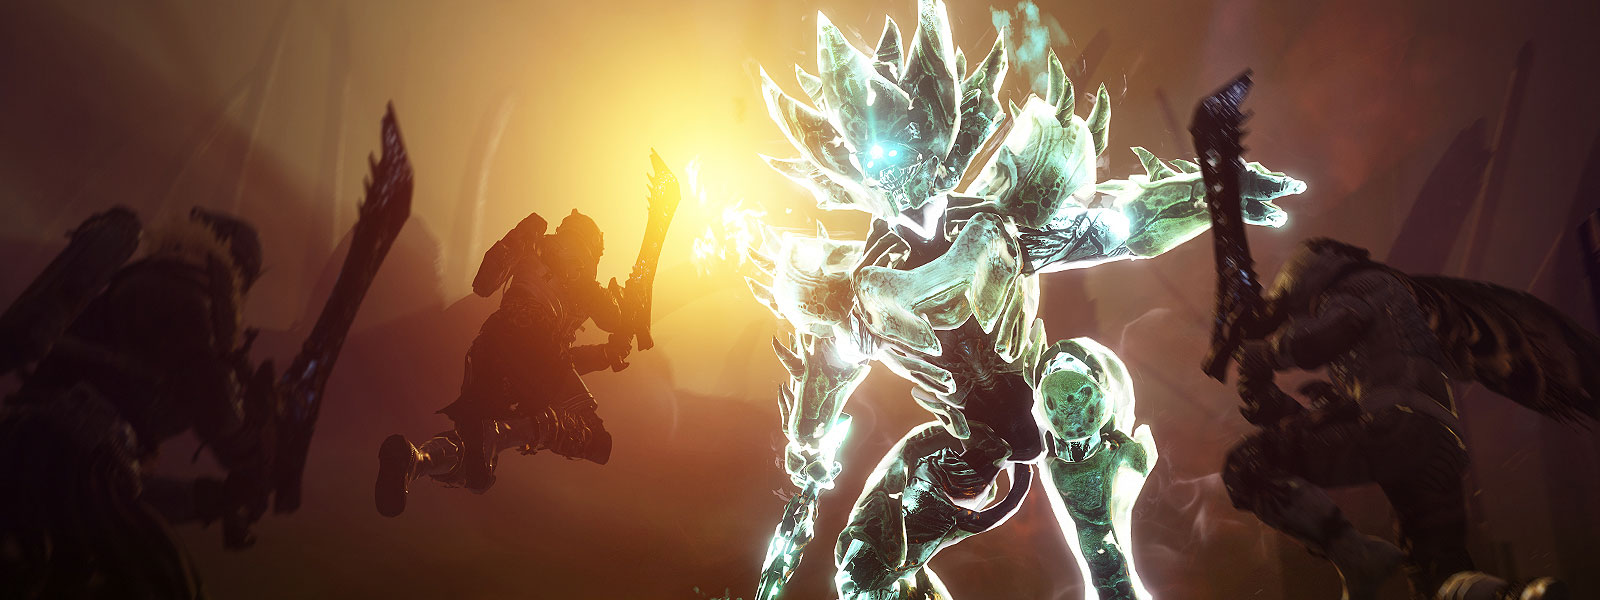 Character in glowing armour fighting three enemies